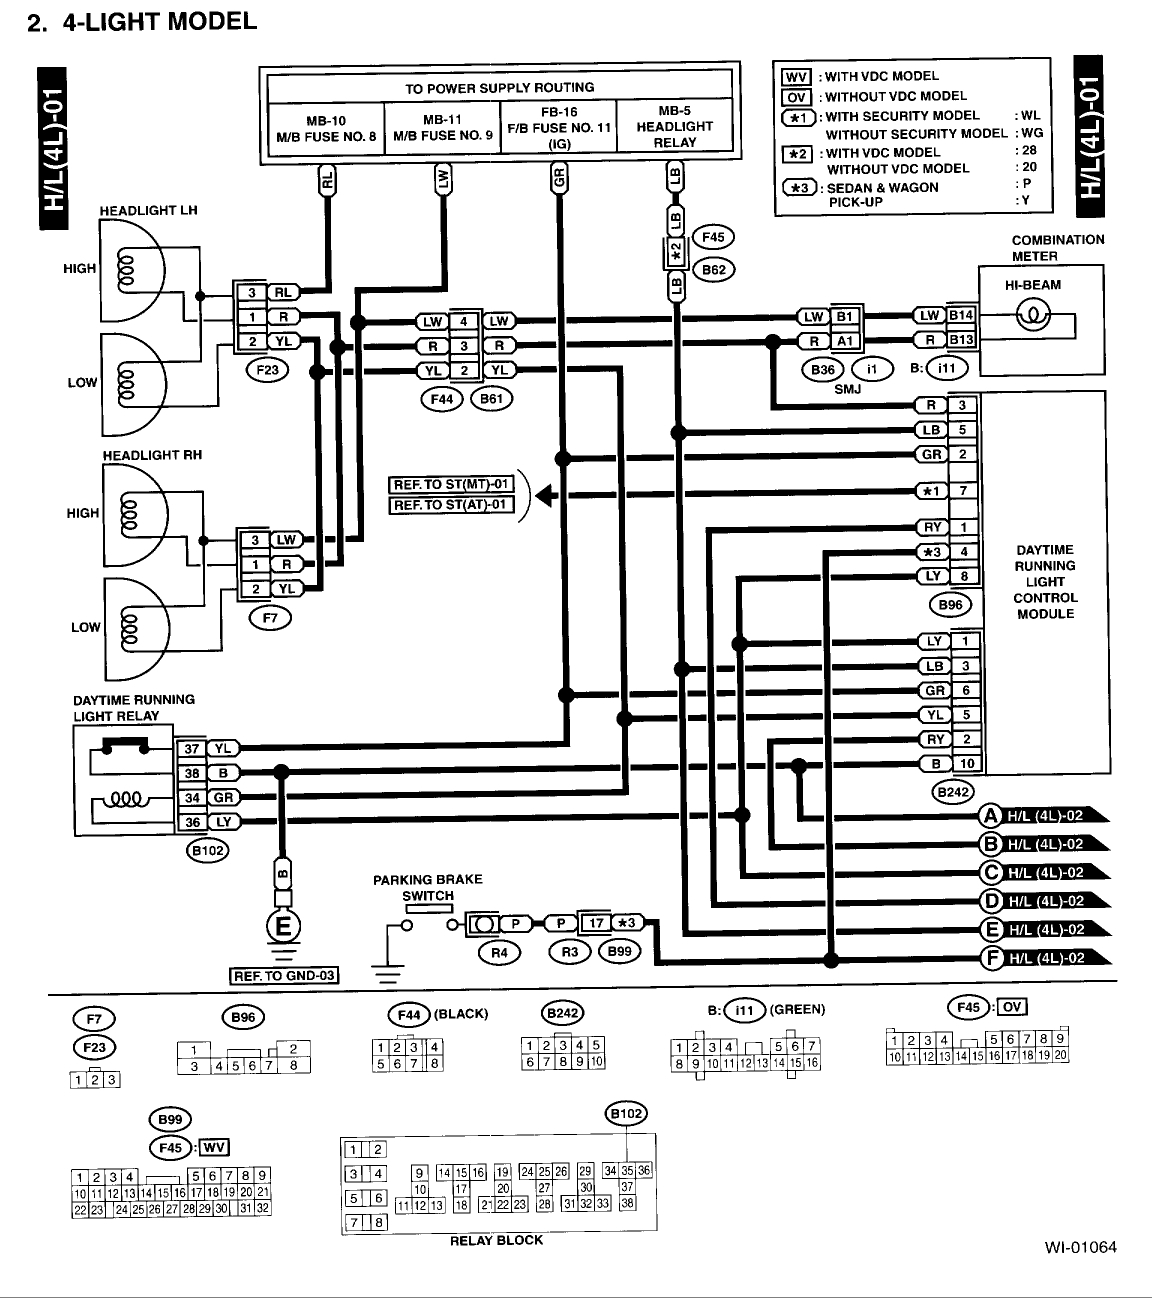 hight resolution of subaru impreza wiring diagram wiring diagram show 1999 subaru forester wiring diagram 1999 subaru wiring diagrams